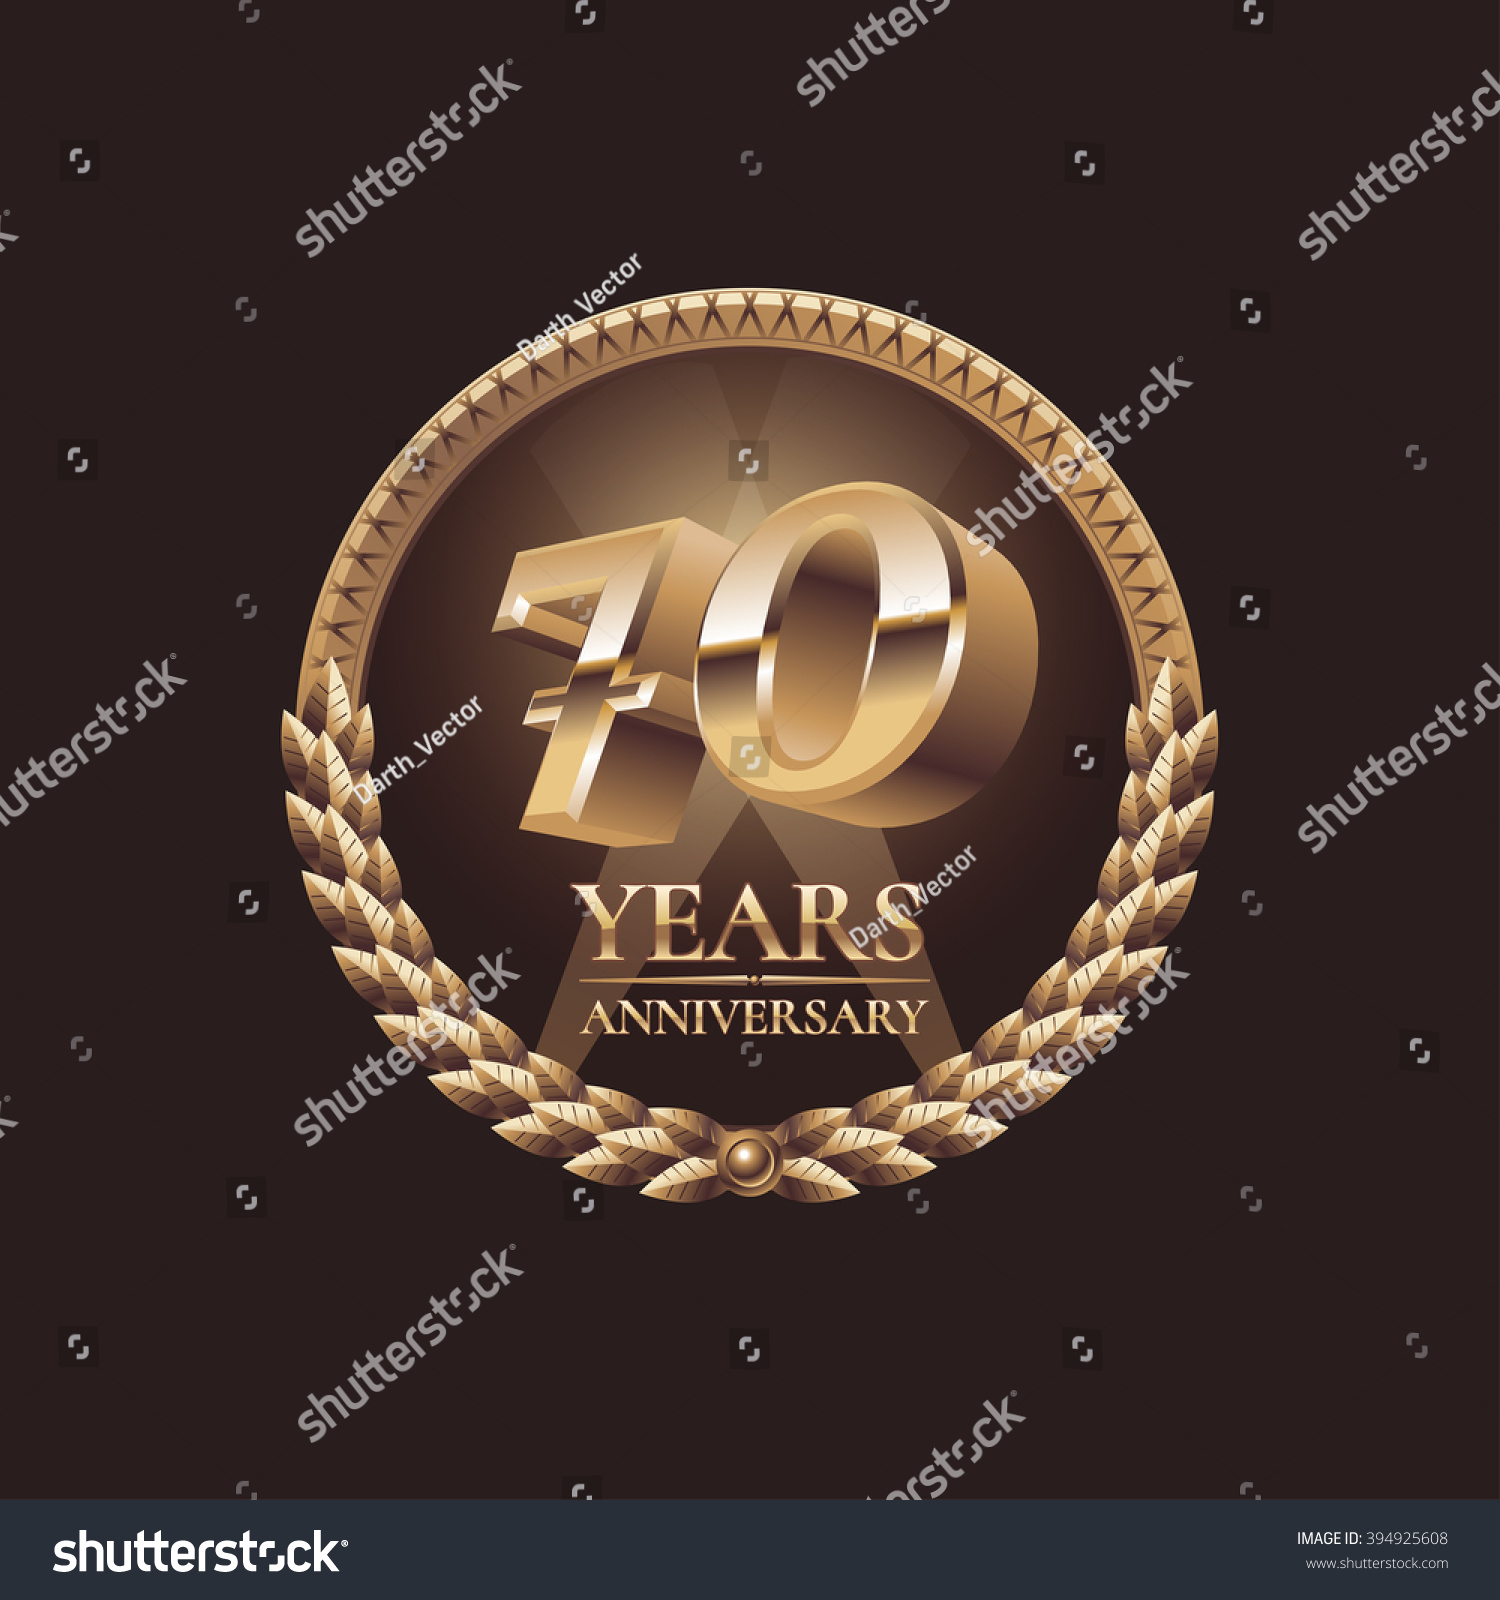 70 years anniversary vector icon symbol stock vector 394925608 70 years anniversary vector icon symbol emblem logo golden decoration design element biocorpaavc